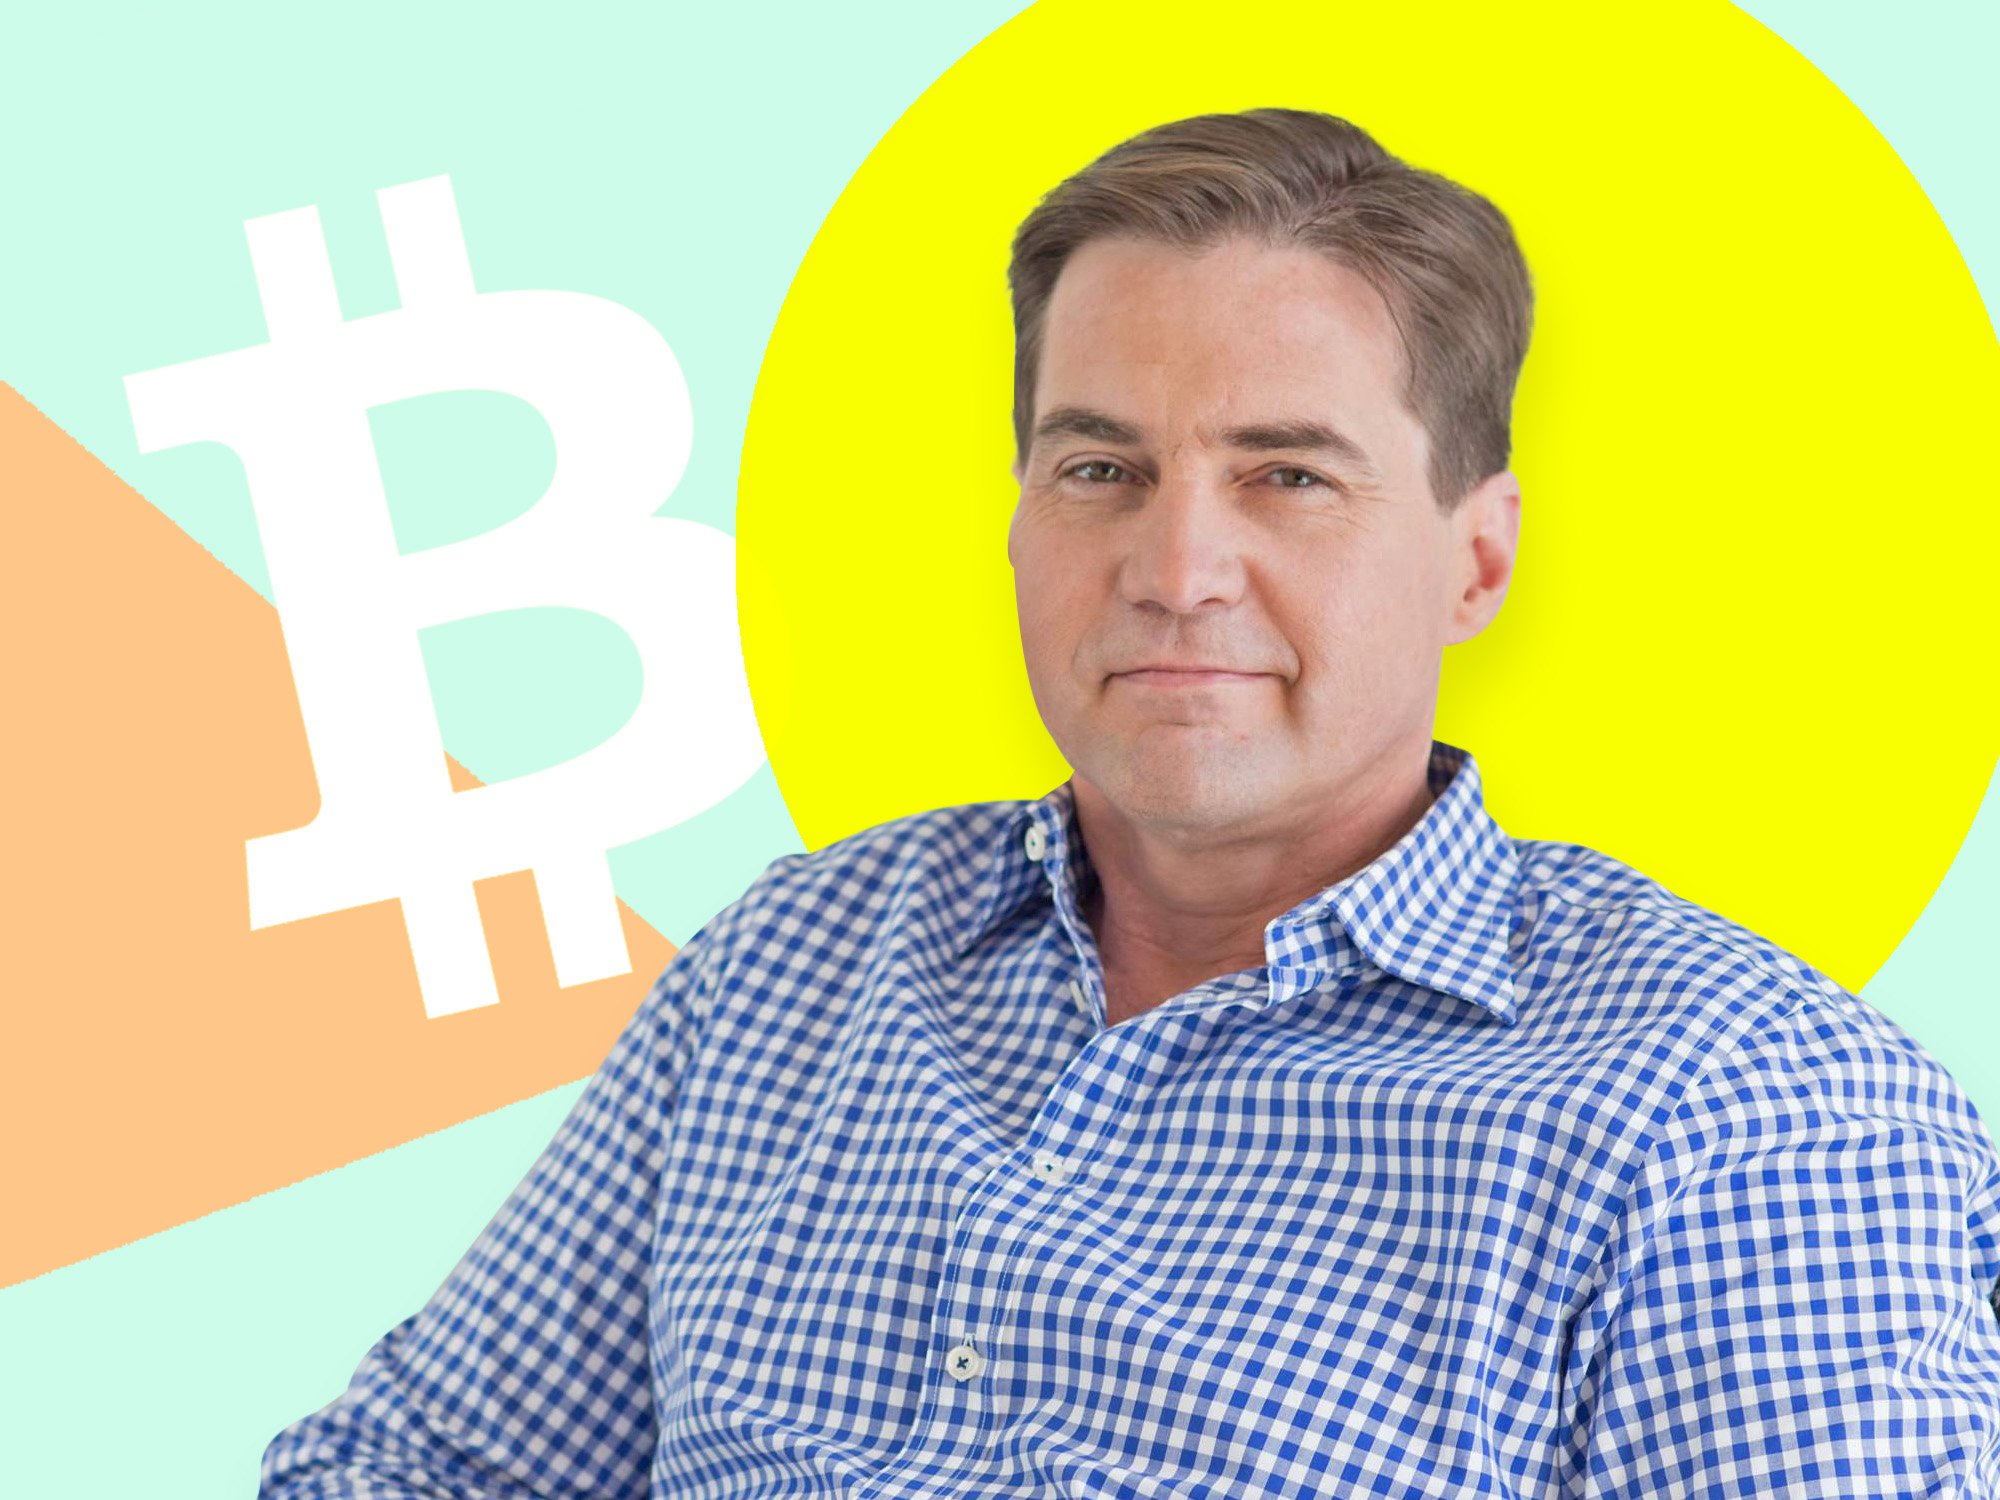 Alleged Bitcoin creator Craig 'Satoshi Nakamoto' Wright reveals his secrets in rare interview